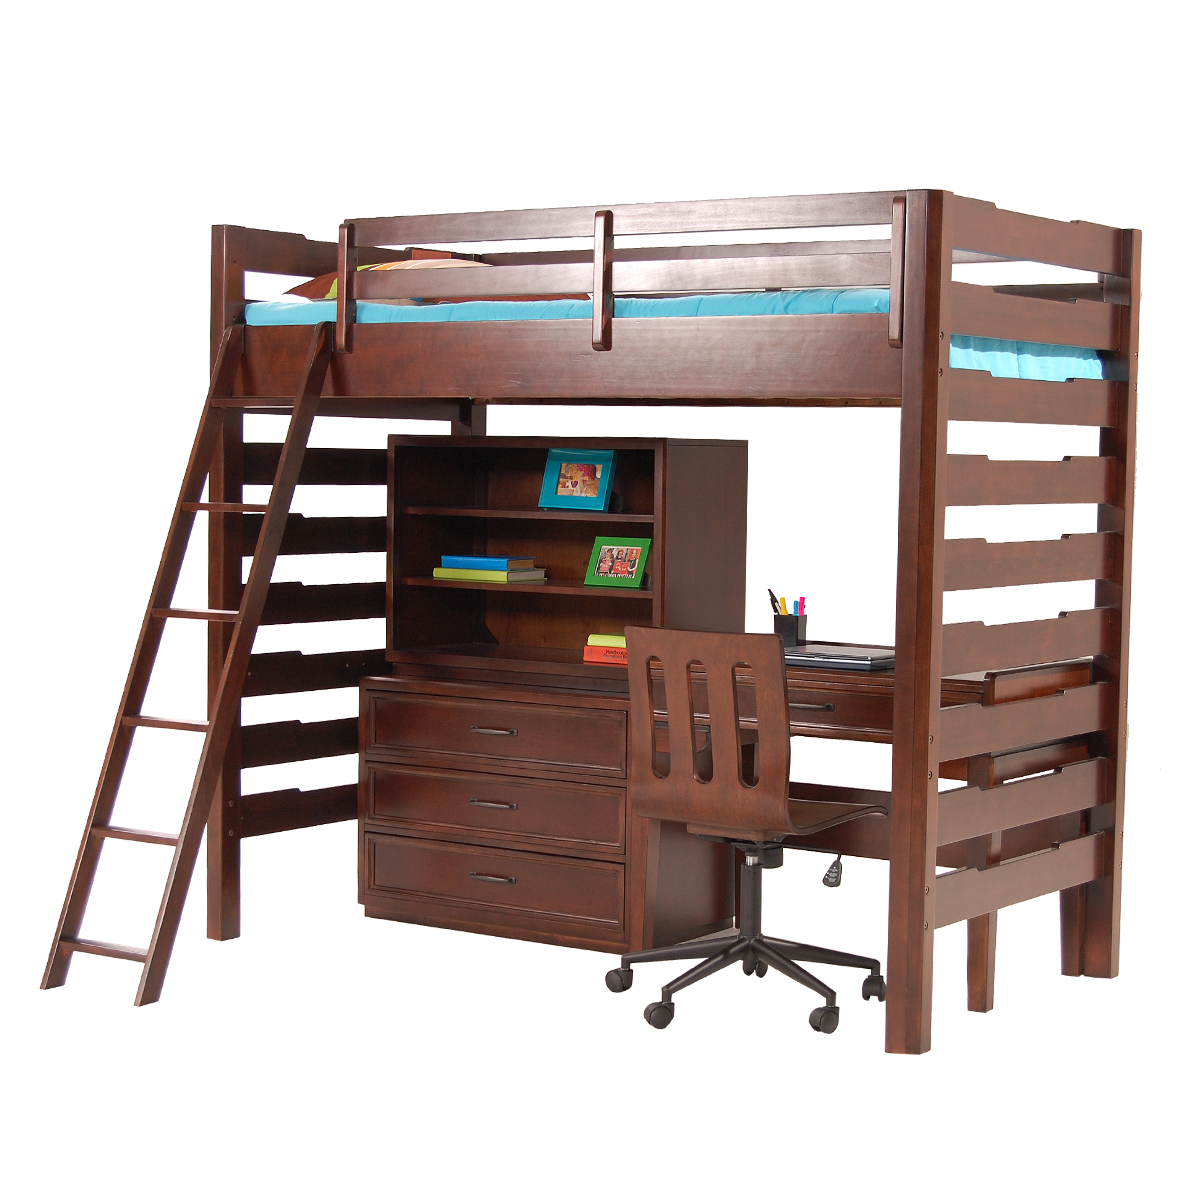 El dorado furniture making more out of less maximizing for 4 bunk beds in a room